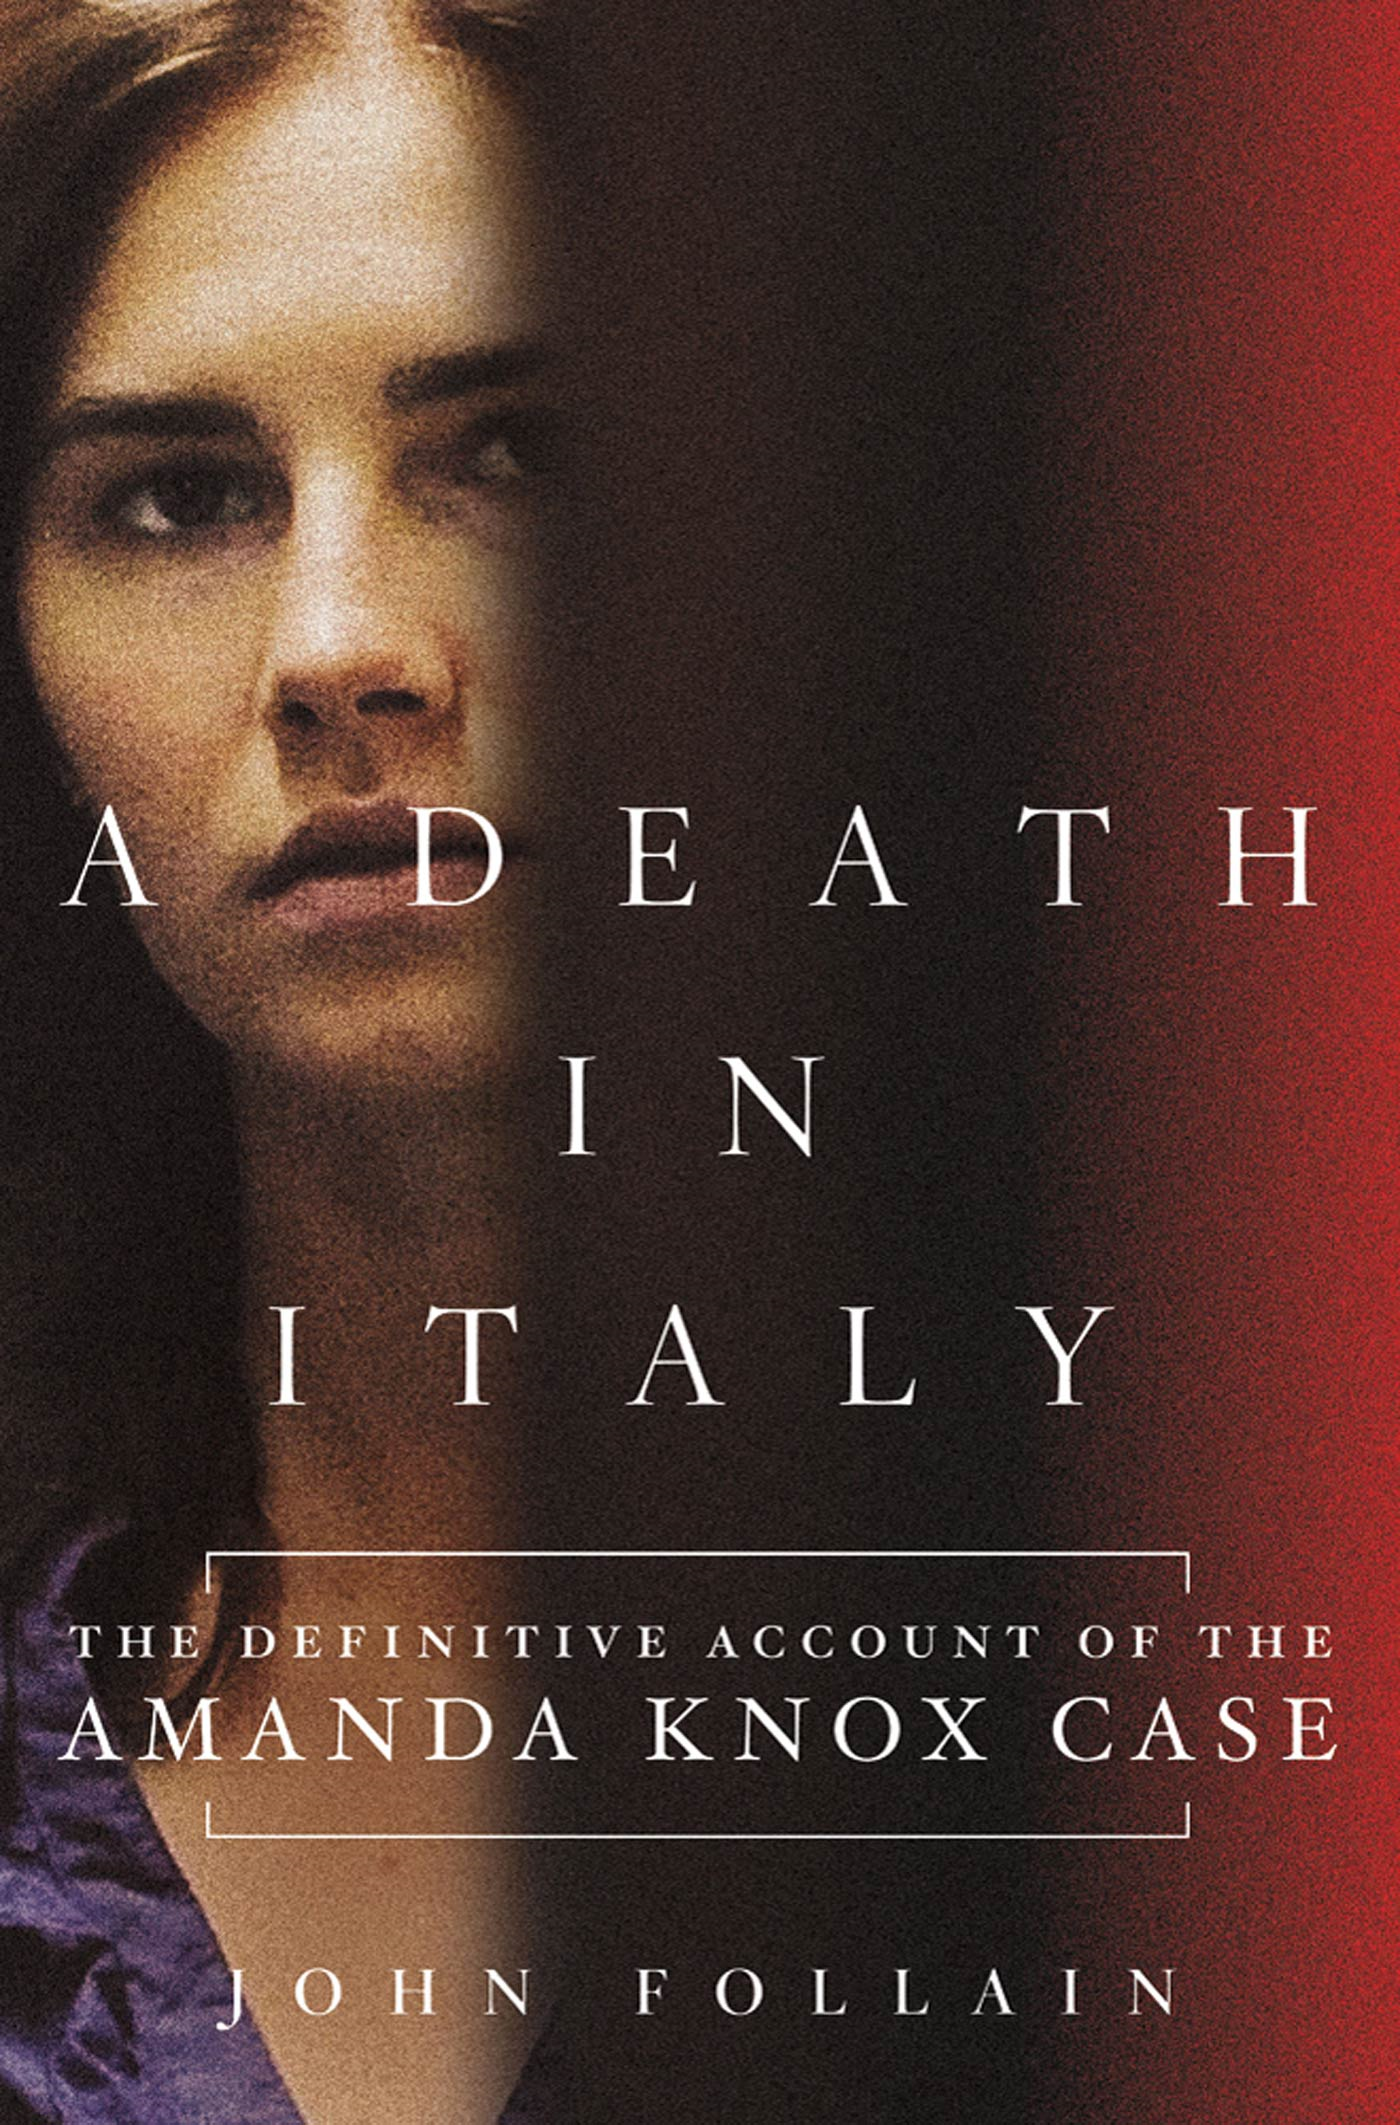 A Death in Italy By: John Follain